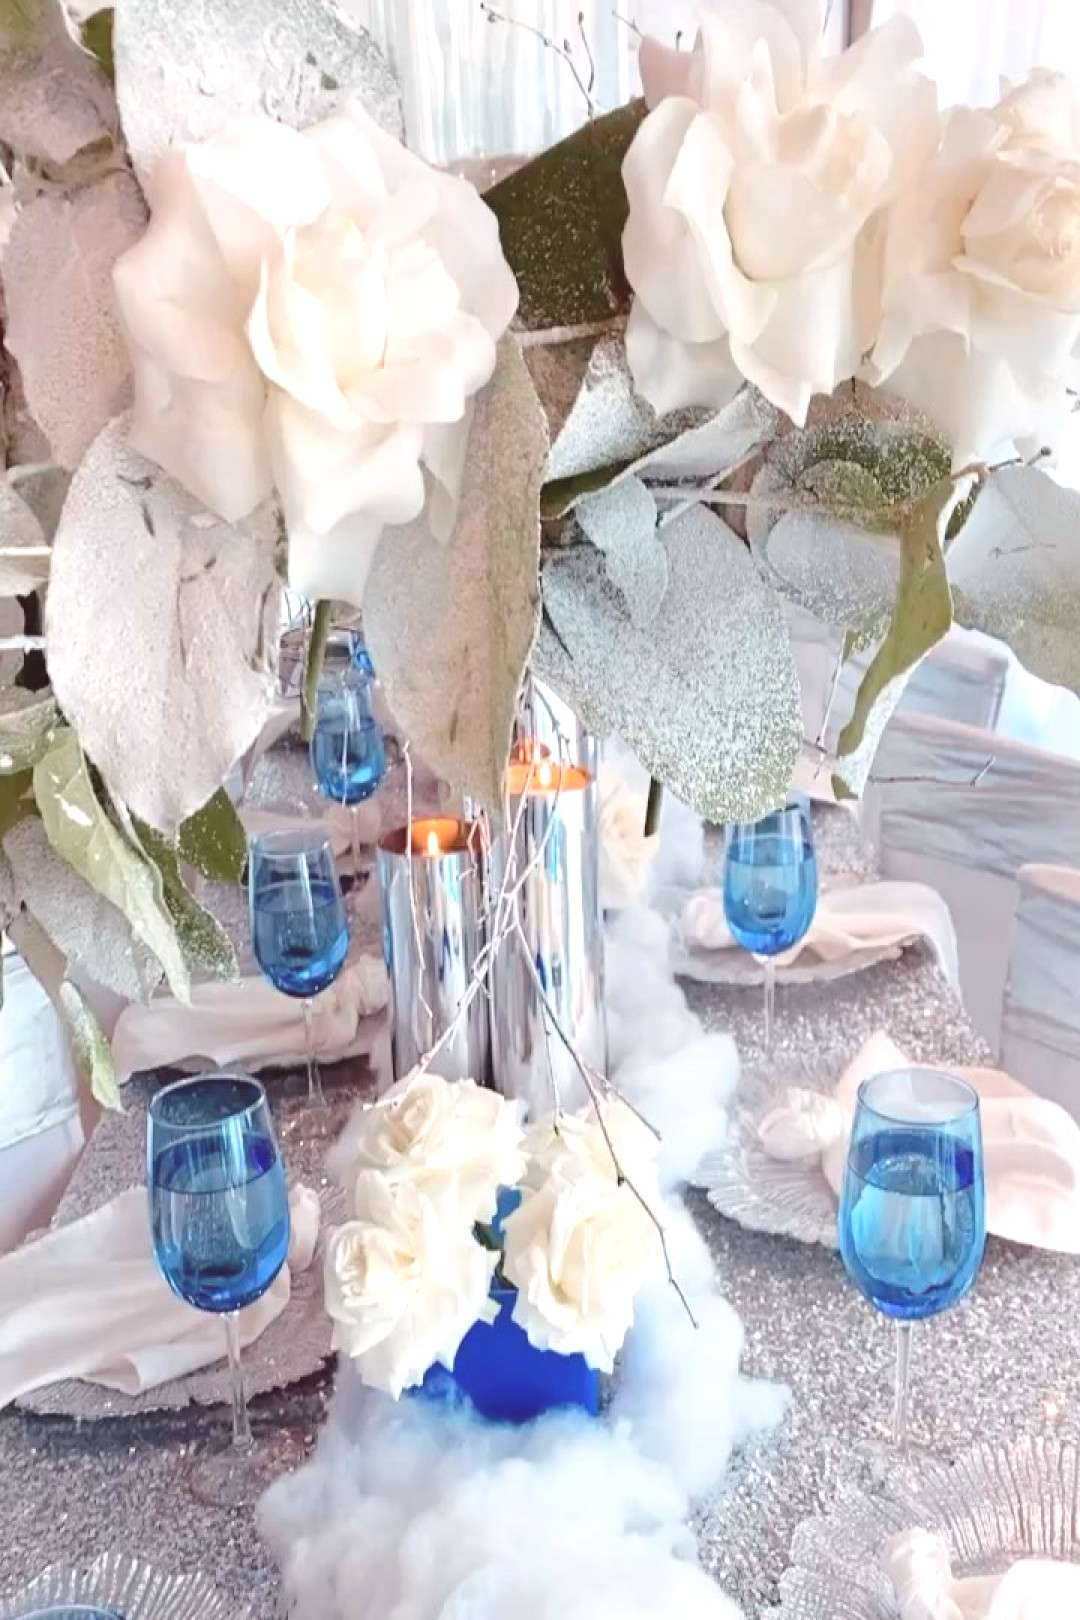 New Table Decor step by step before & after #sweetsixteenparty If